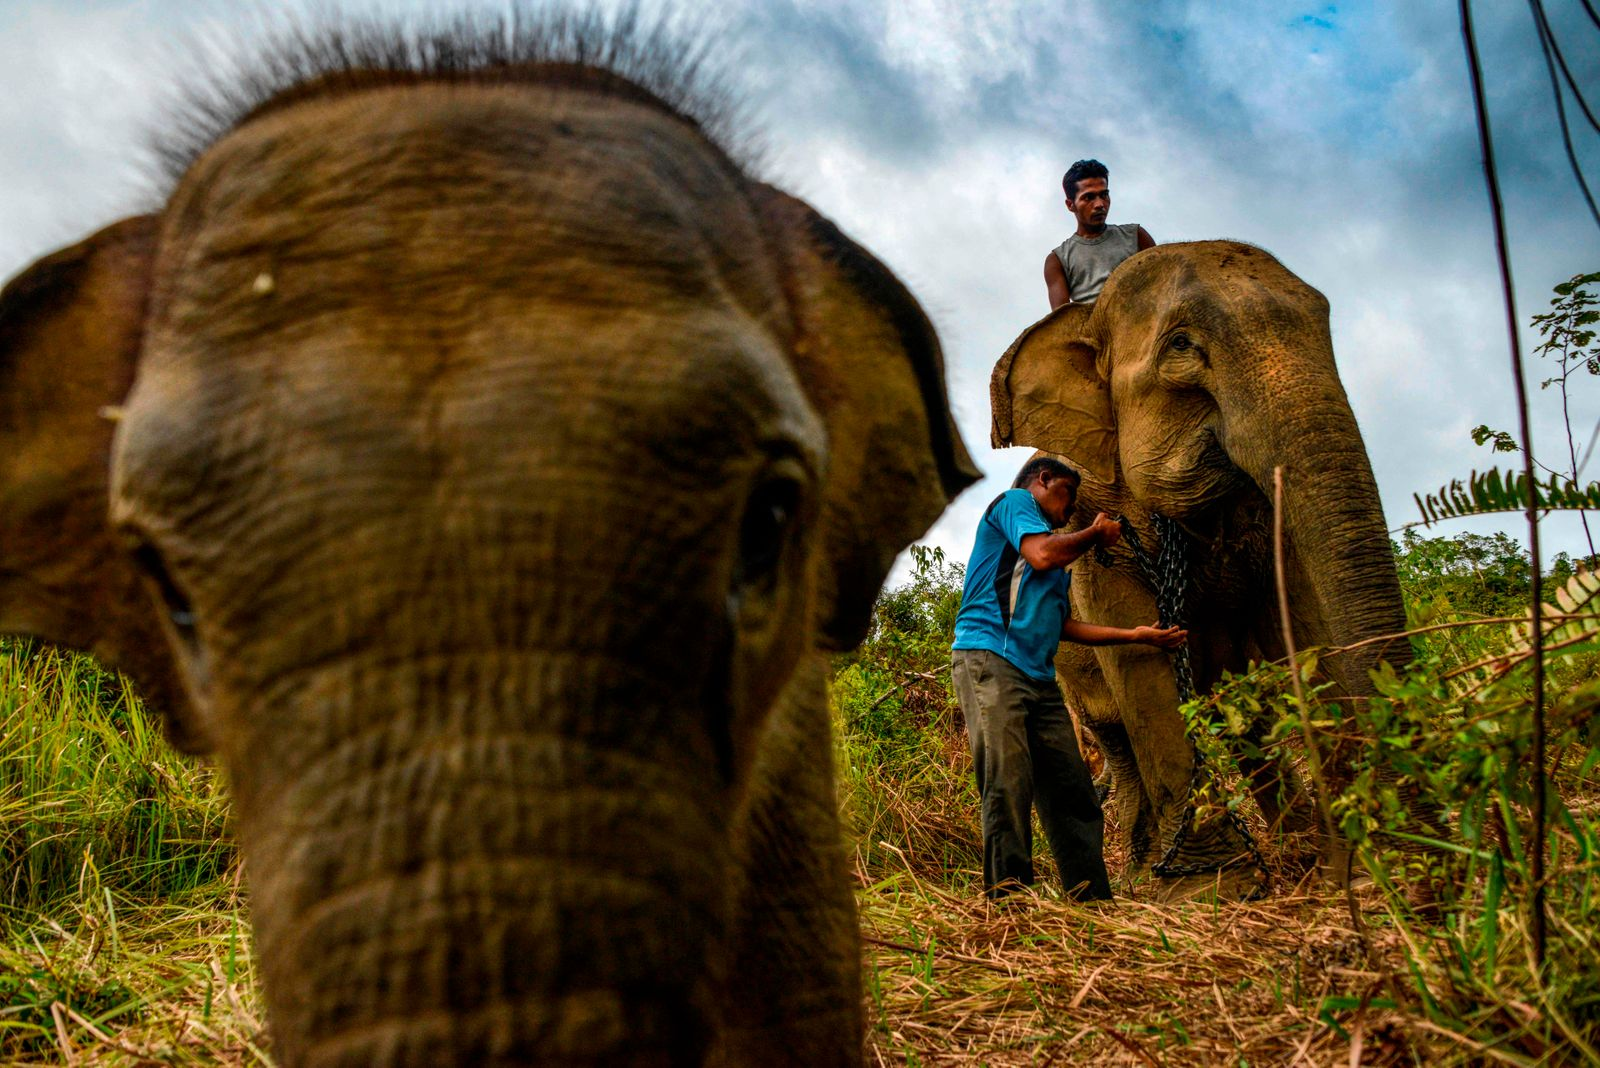 TOPSHOT-INDONESIA-ANIMAL-ELEPHANT